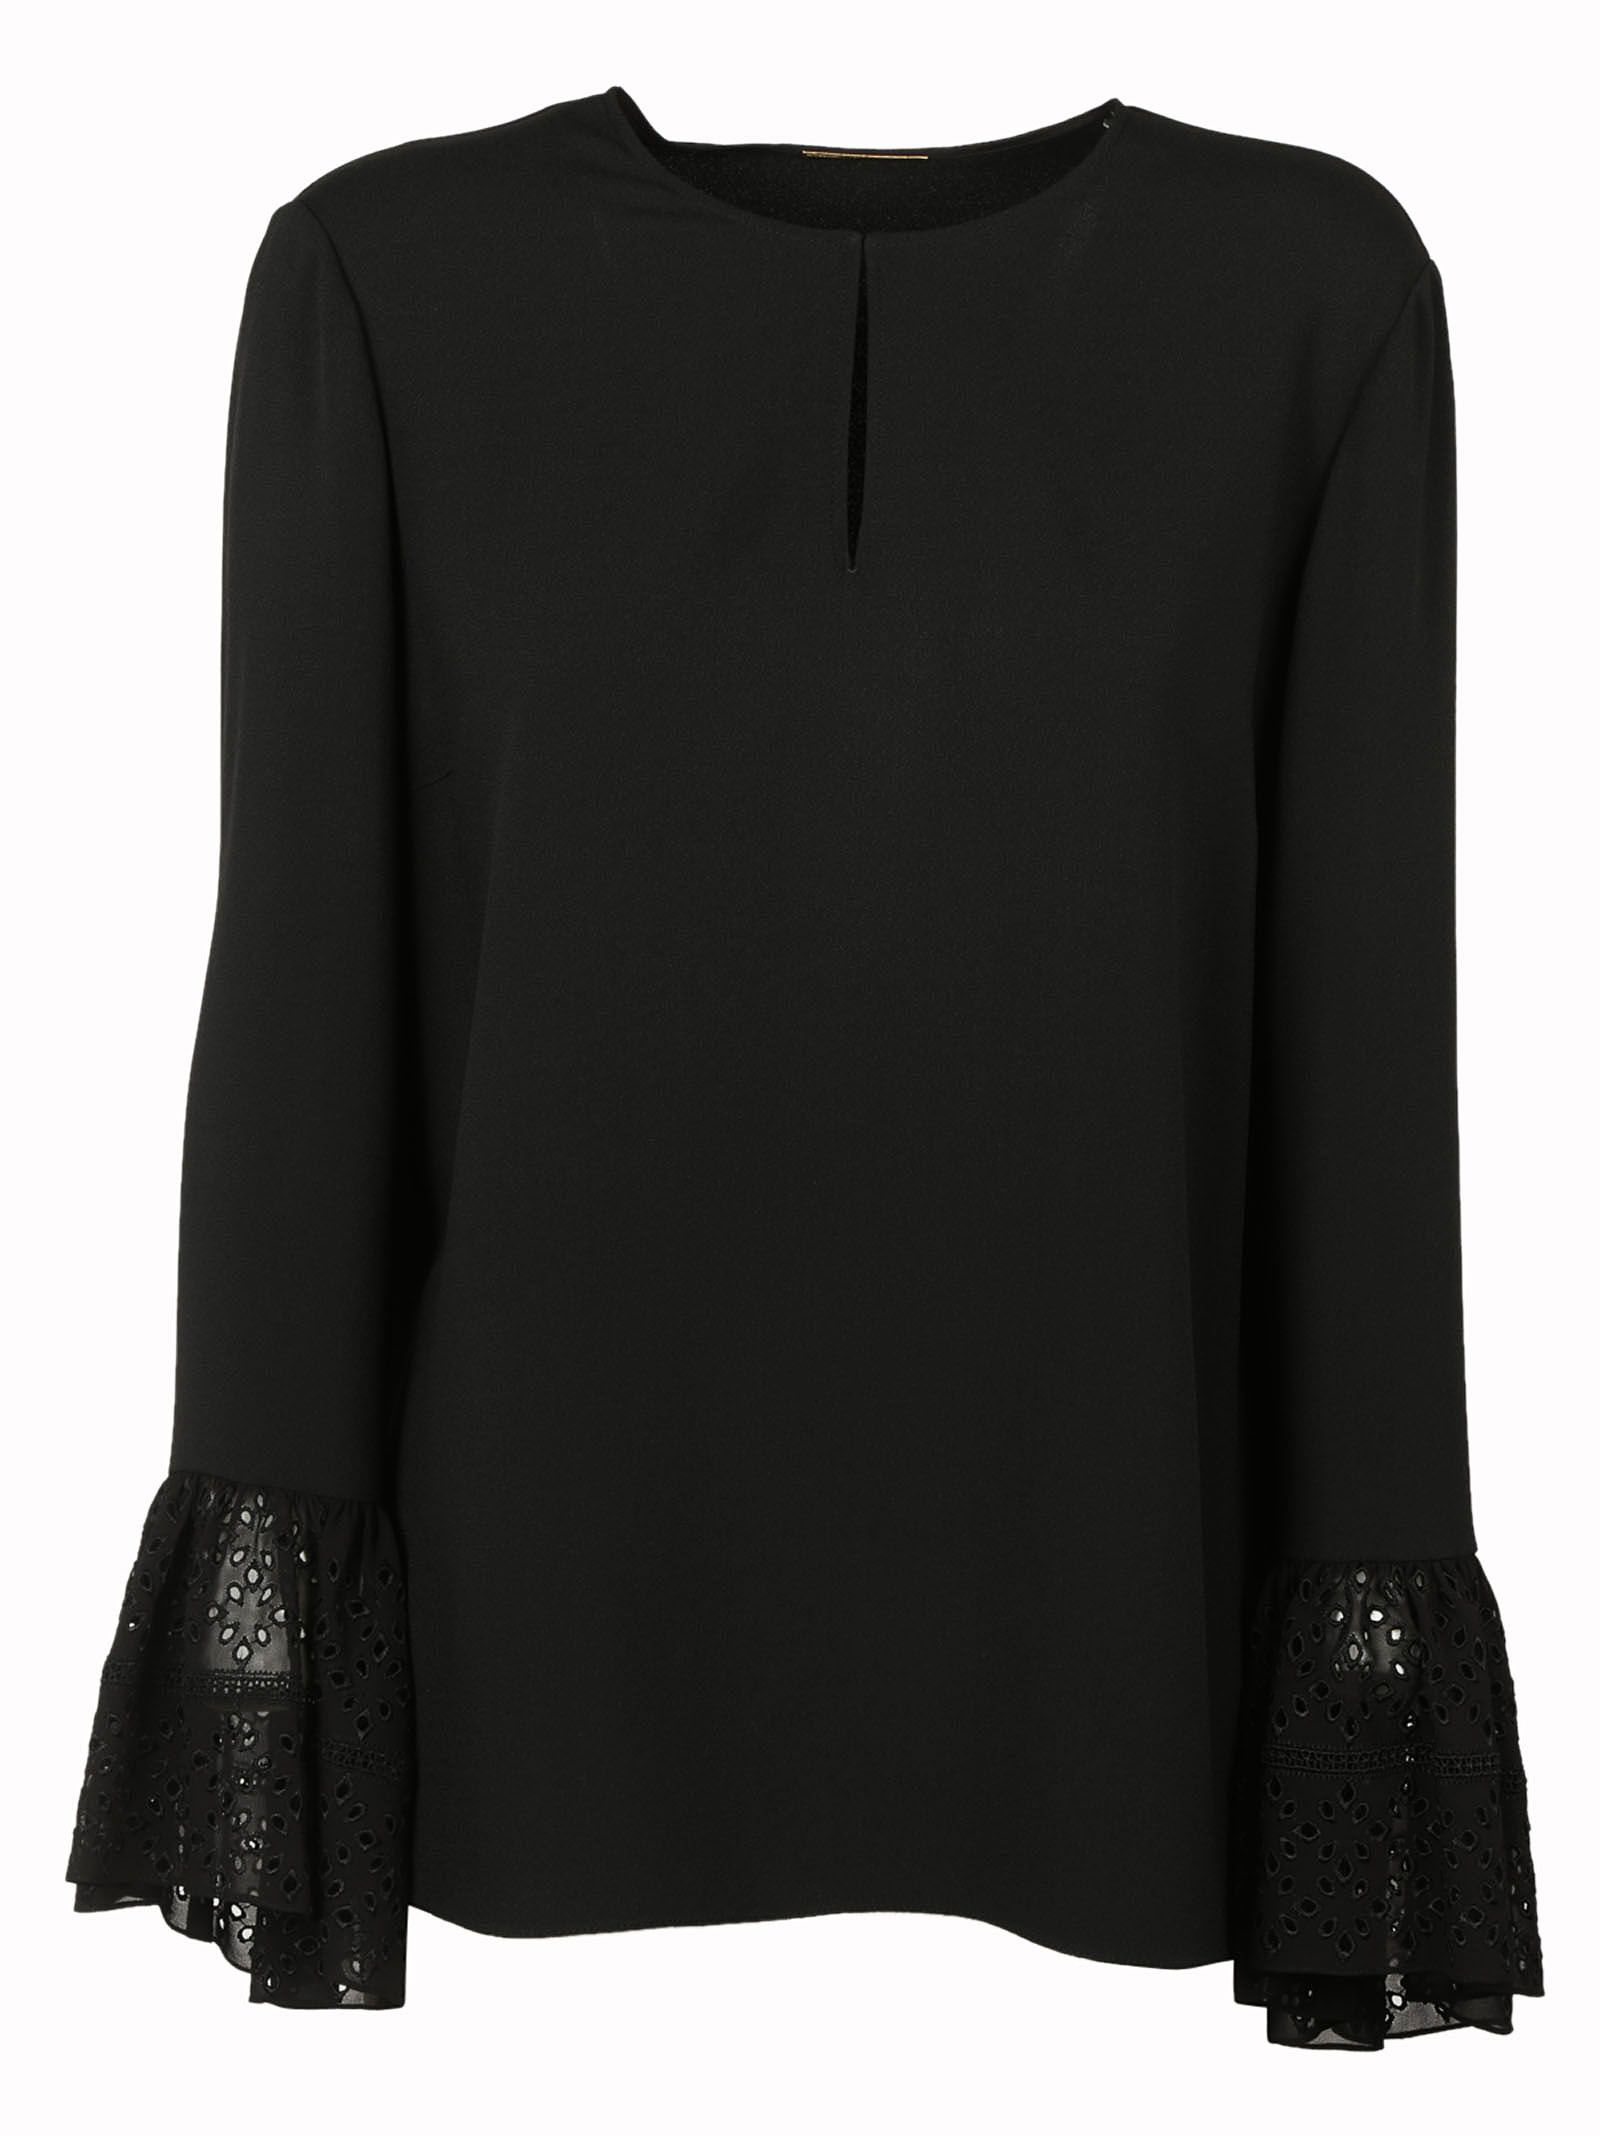 Saint Laurent Lace Cuff Blouse